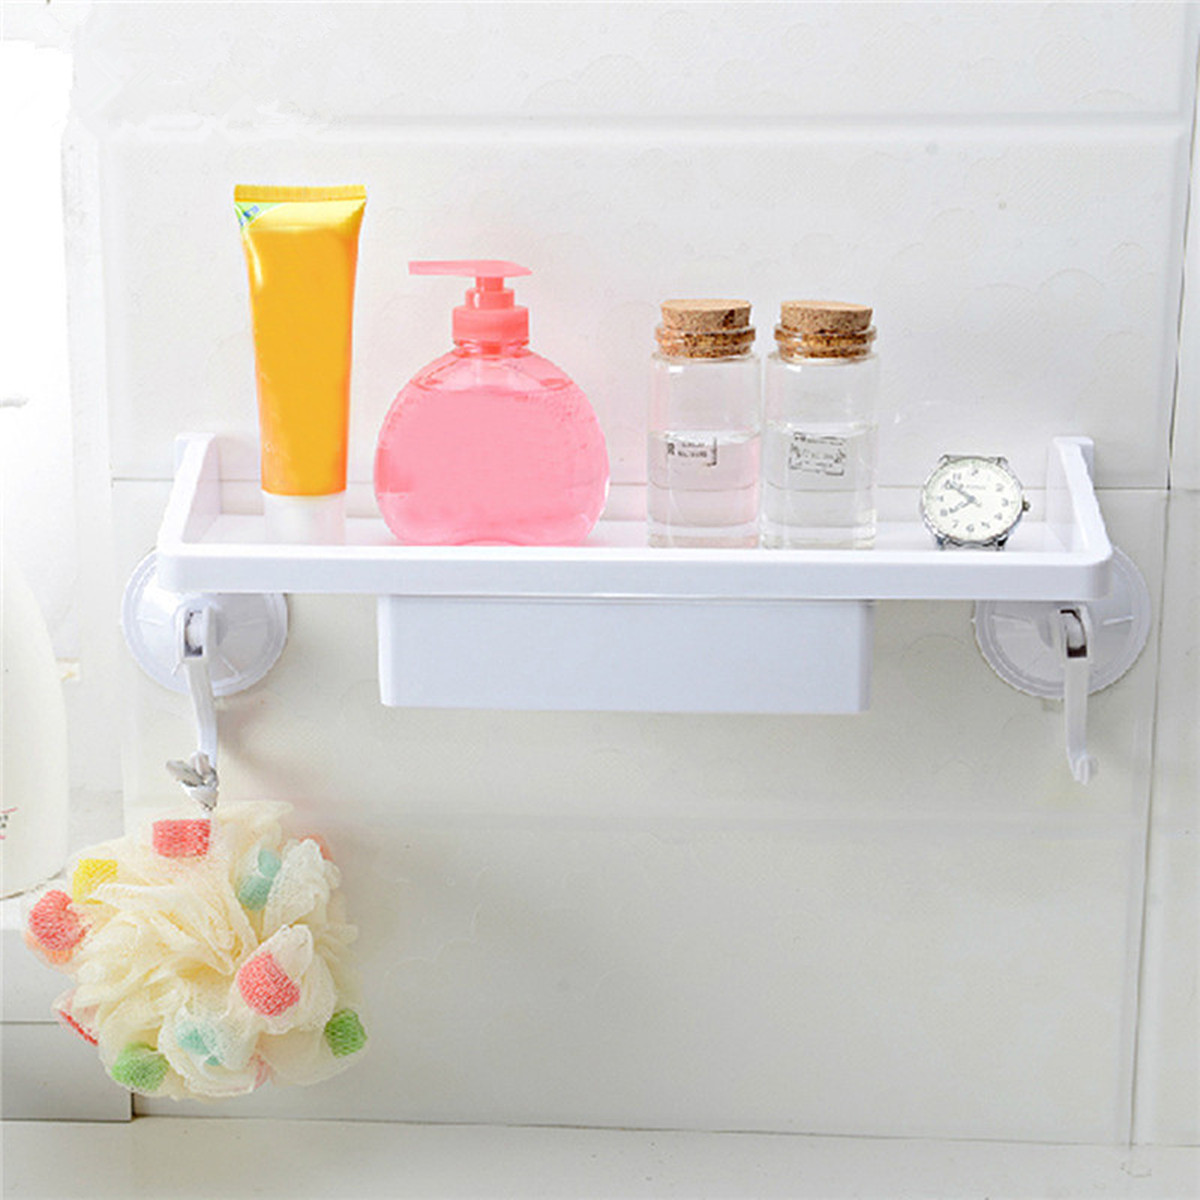 Suction Cup Shelf Caddy Rack Holder Storage with Drawer Kitchen Bathroom Corner